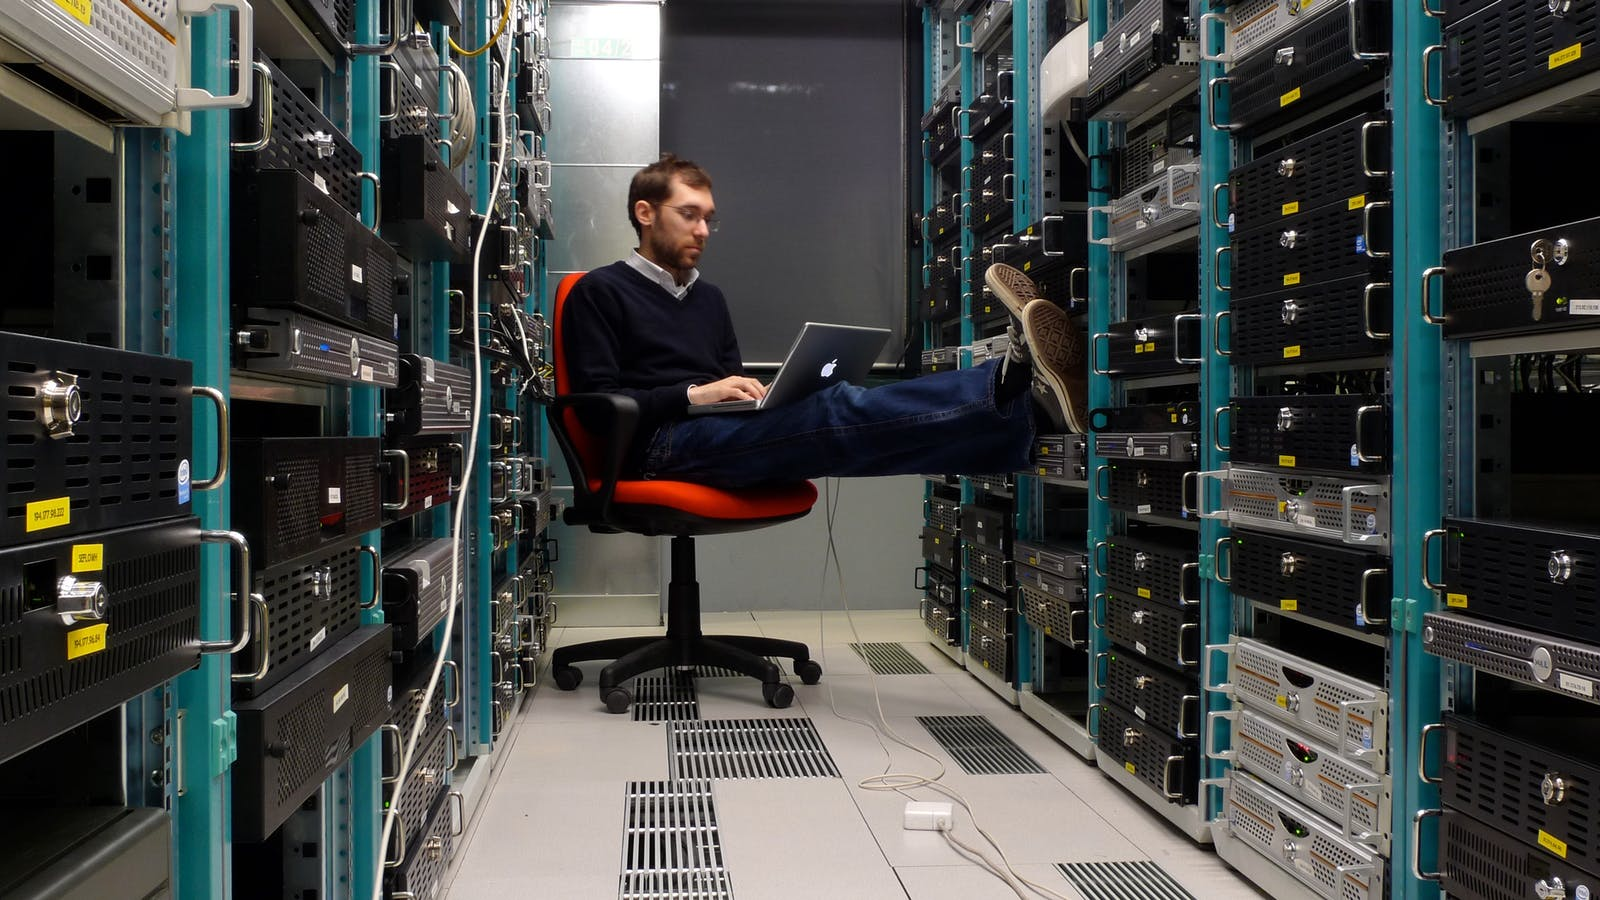 Working in a datacenter. Photo by Flickr/Leonardo Rizzi.